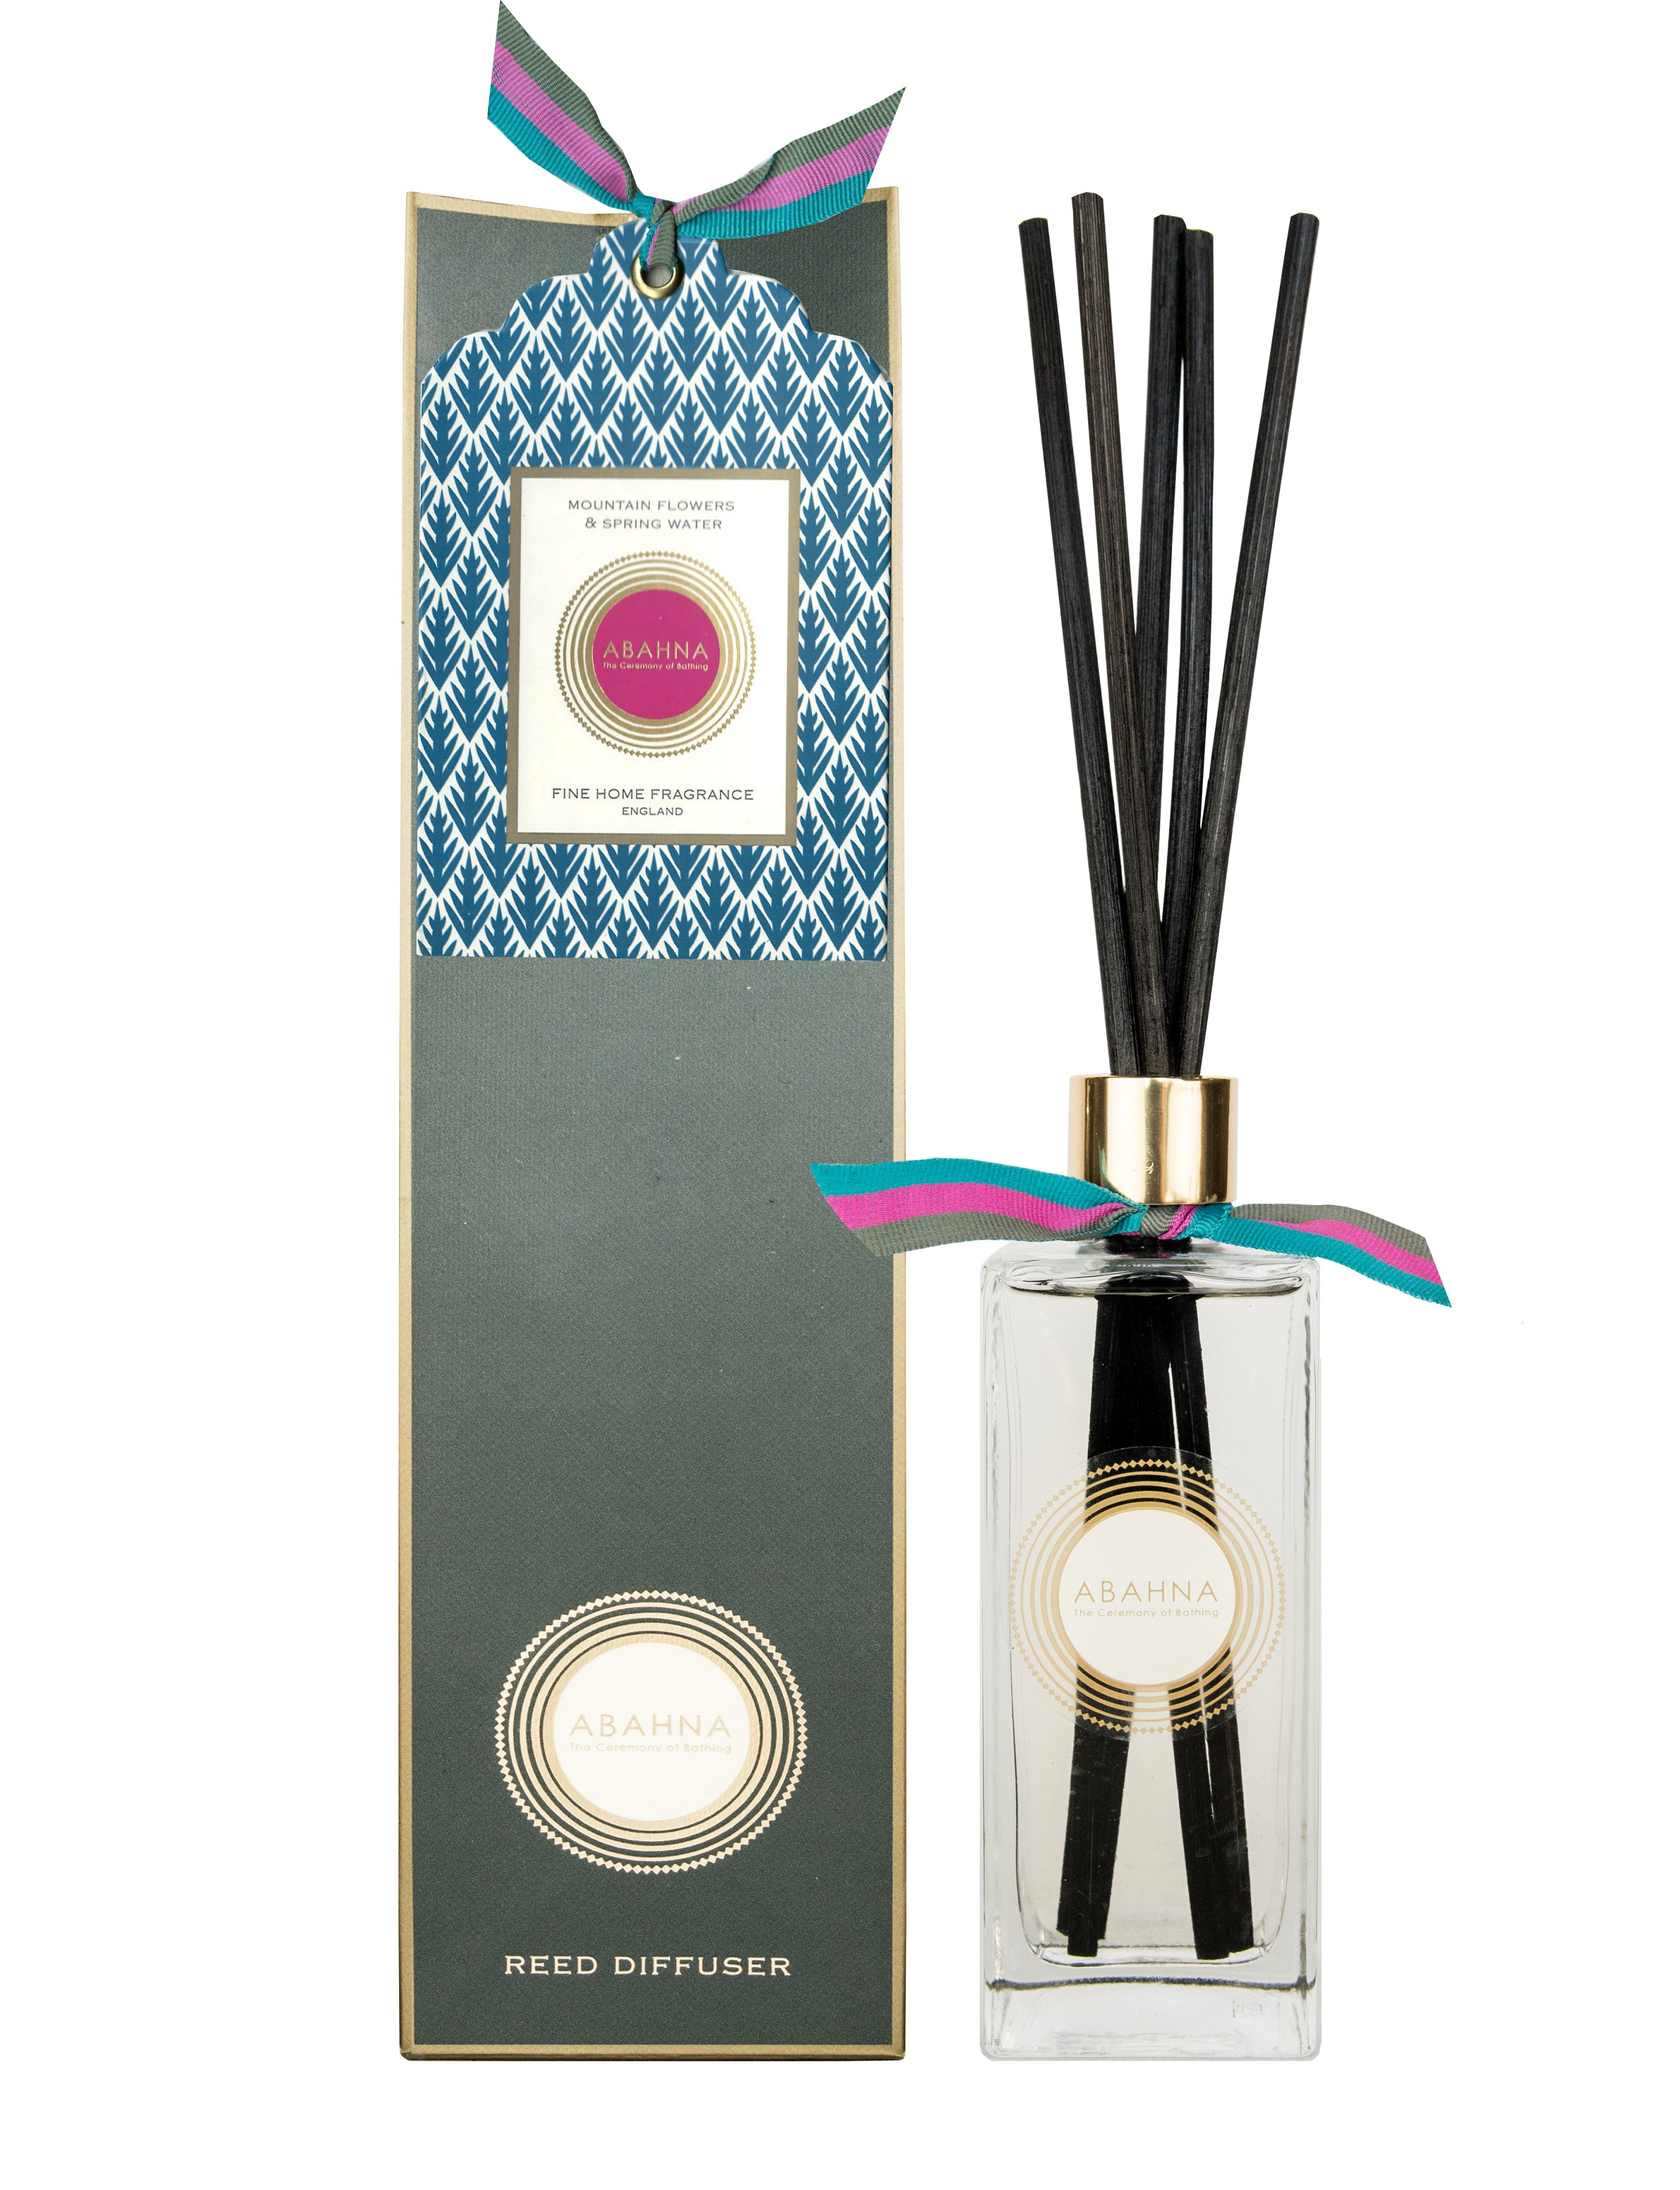 Image of Abahna Mountain Flowers & Spring Water Reed Diffuser Set